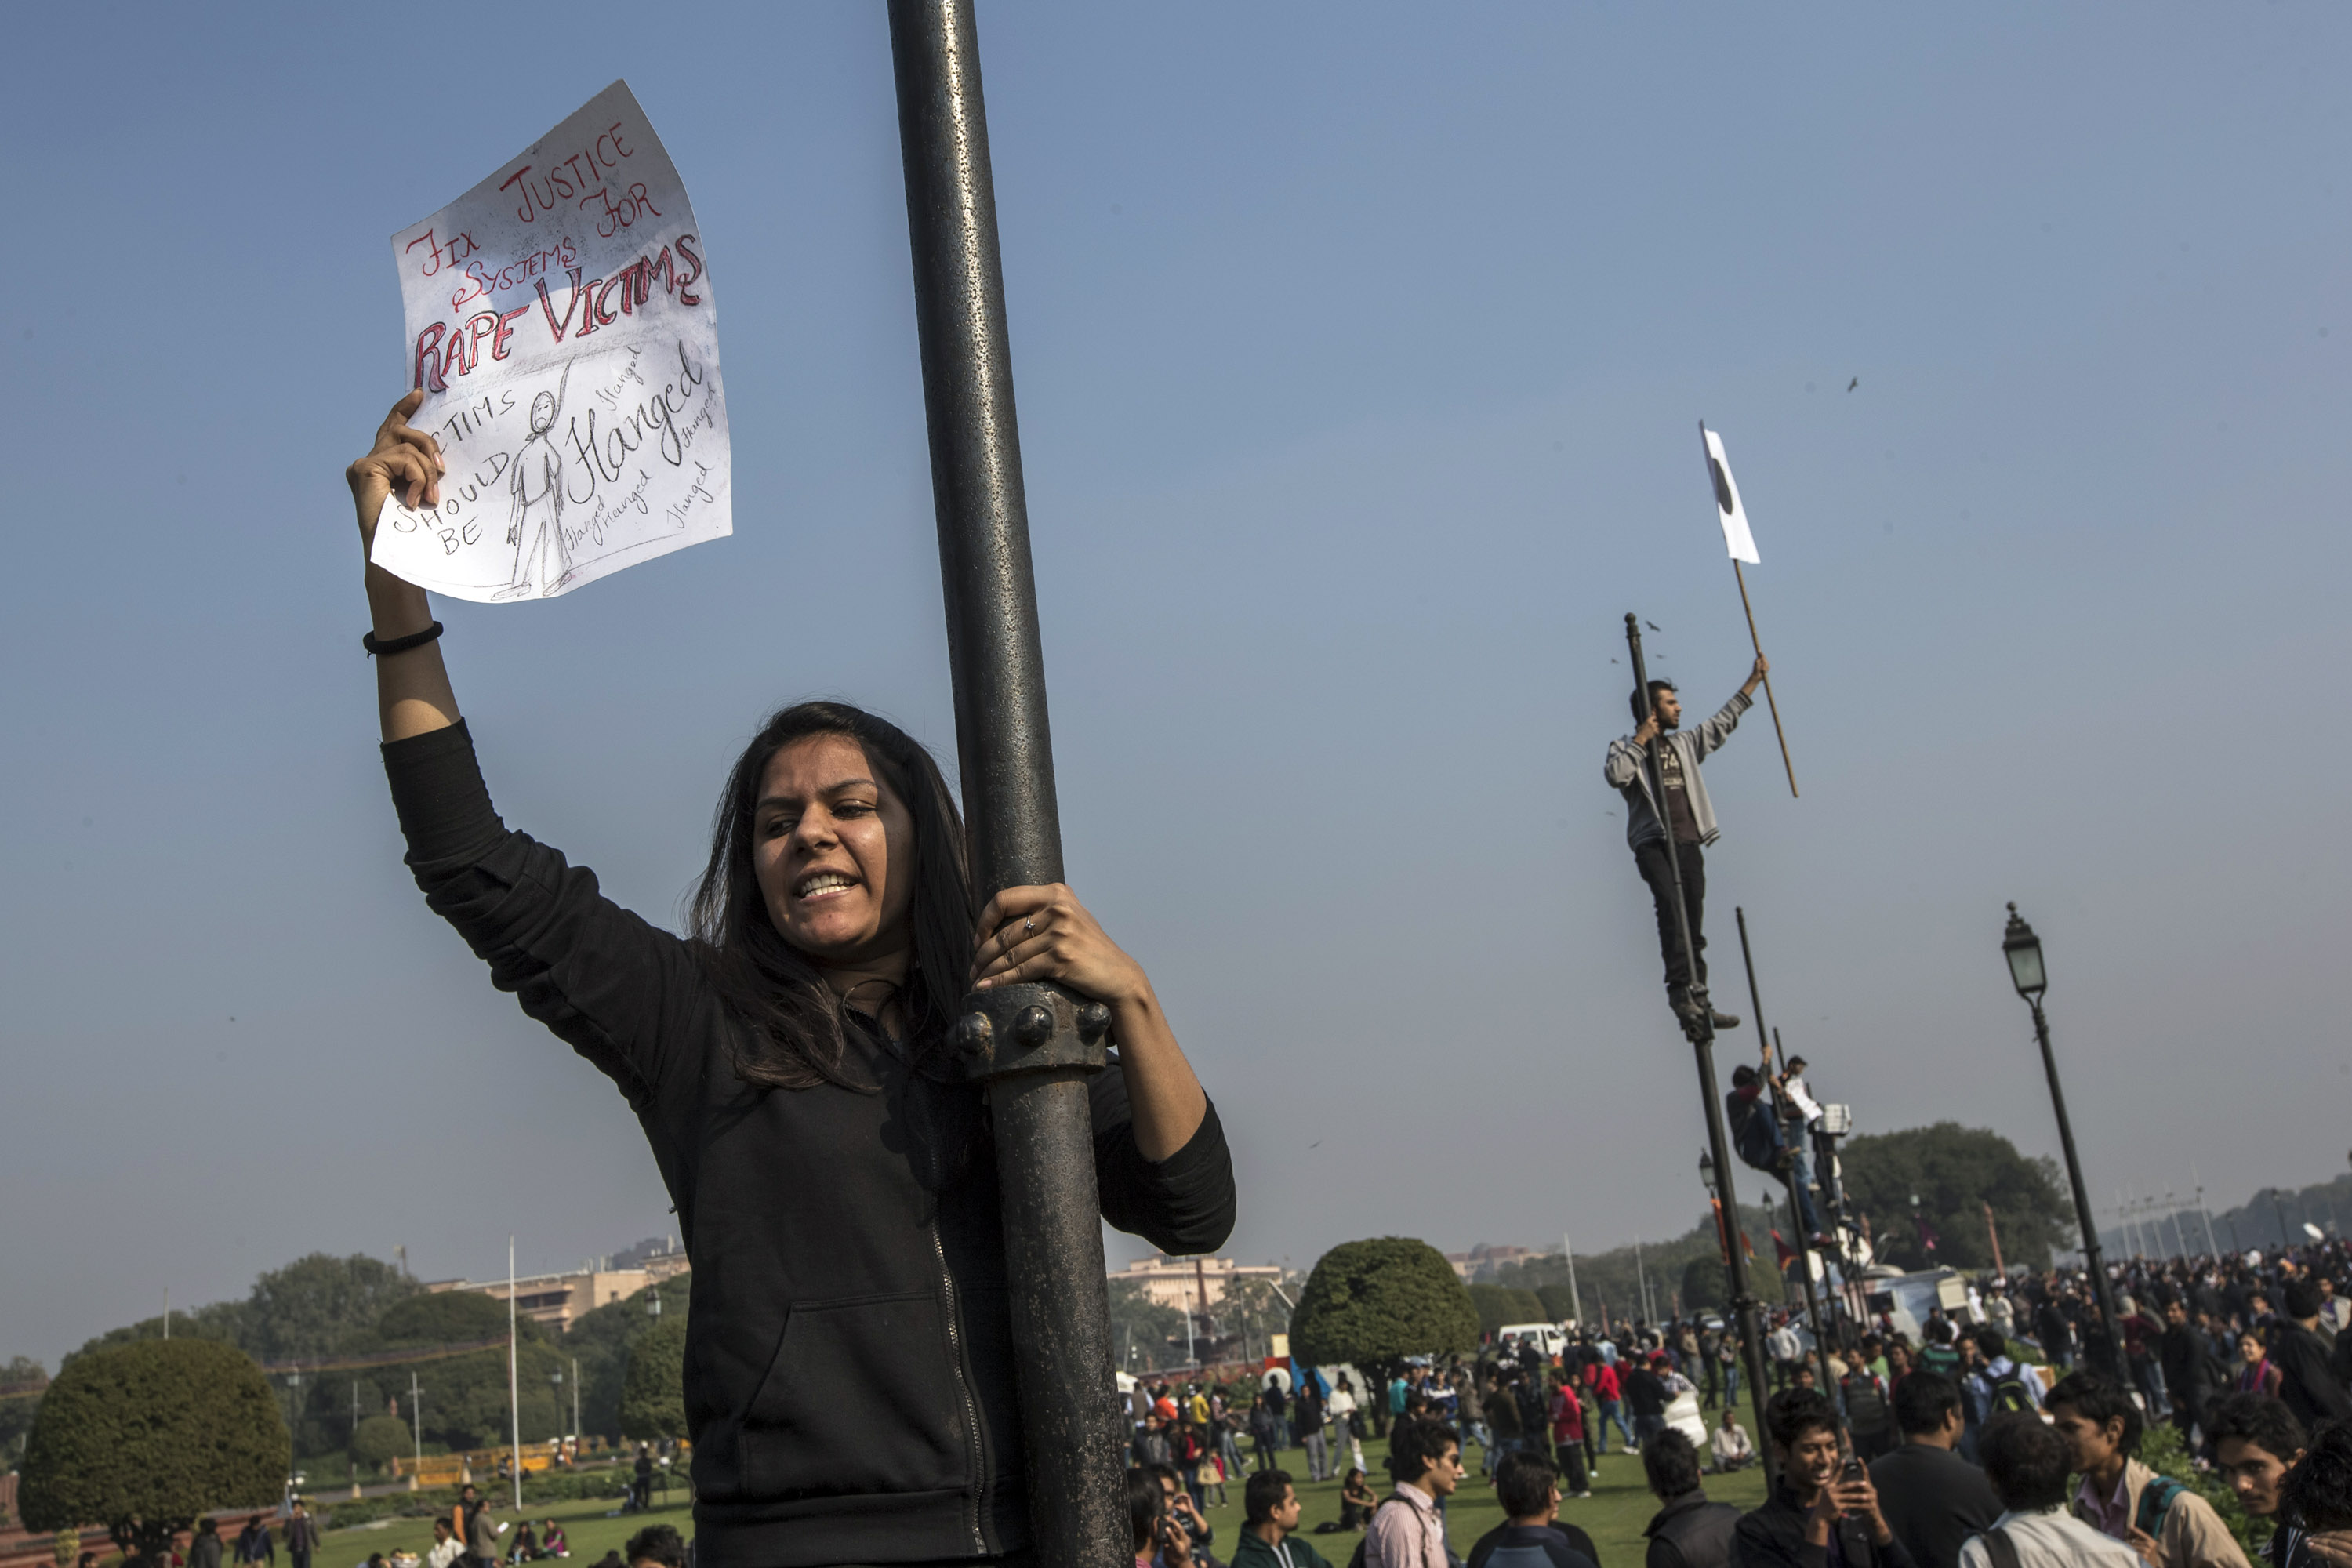 (Picture for representative purposes only) A student voice her opinion during a rally protesting India's high rates of sex crime (Source: Daniel Berehulak/Getty Images)